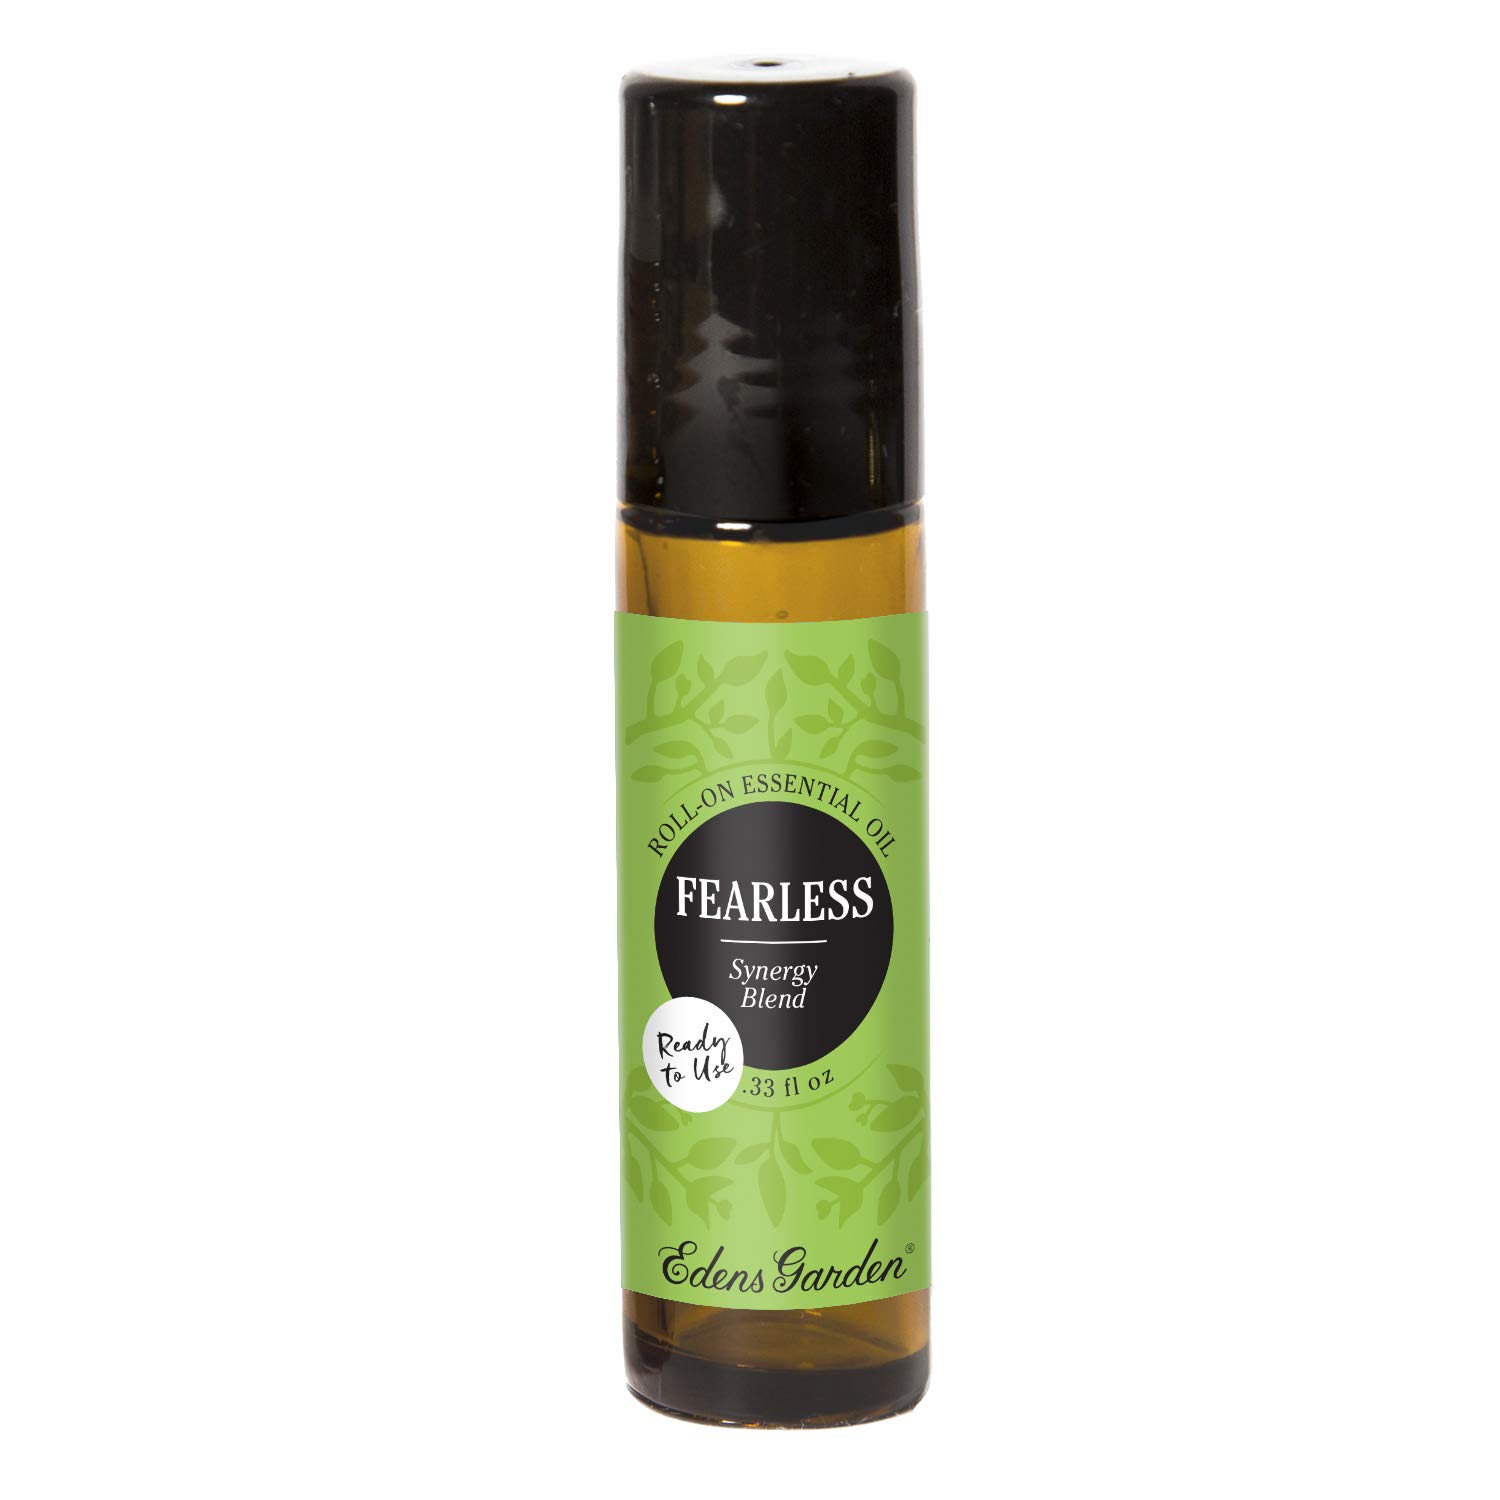 Edens Garden Fearless Essential Oil Synergy Blend, 100% Pure Therapeutic Grade (Pre-Diluted & Ready To Use- Energy & Stress) 10 ml Roll-On